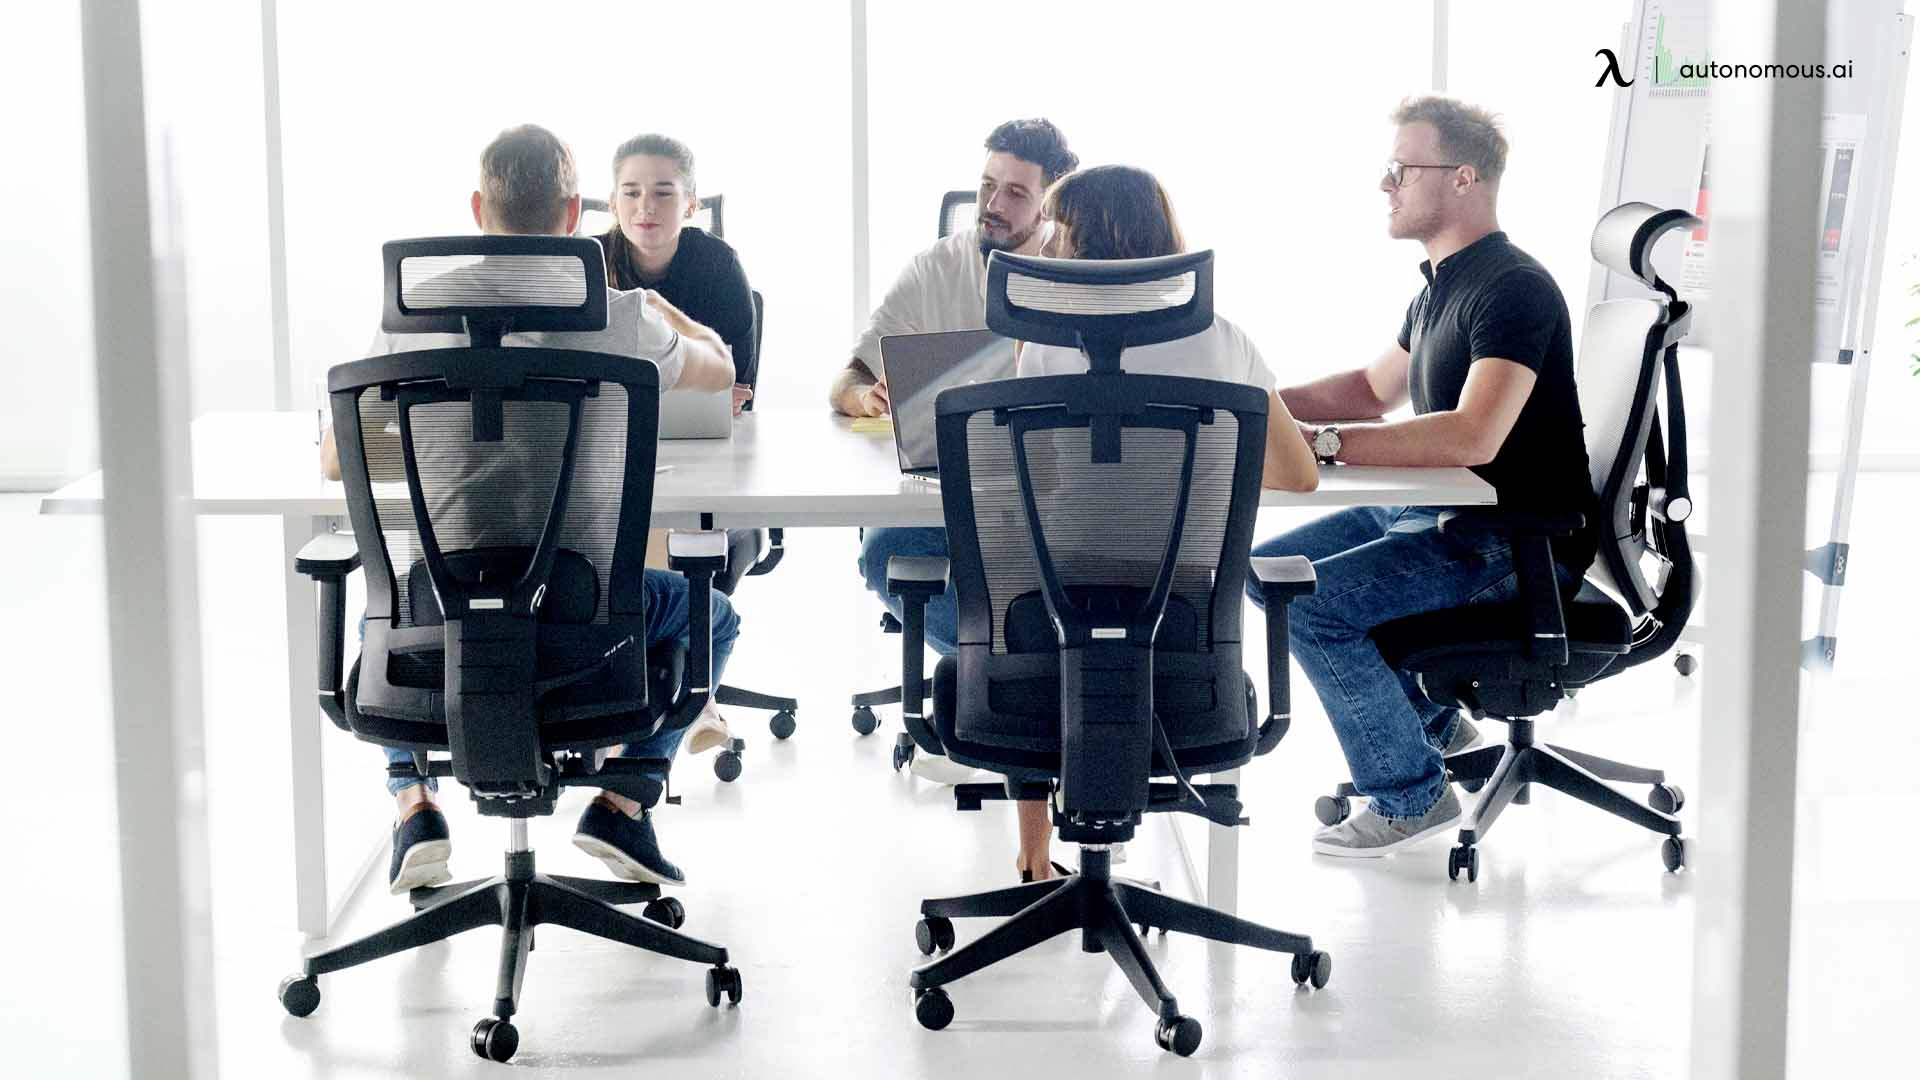 Why Should You Include an Ergonomic Chair in Your Australian Workspace?